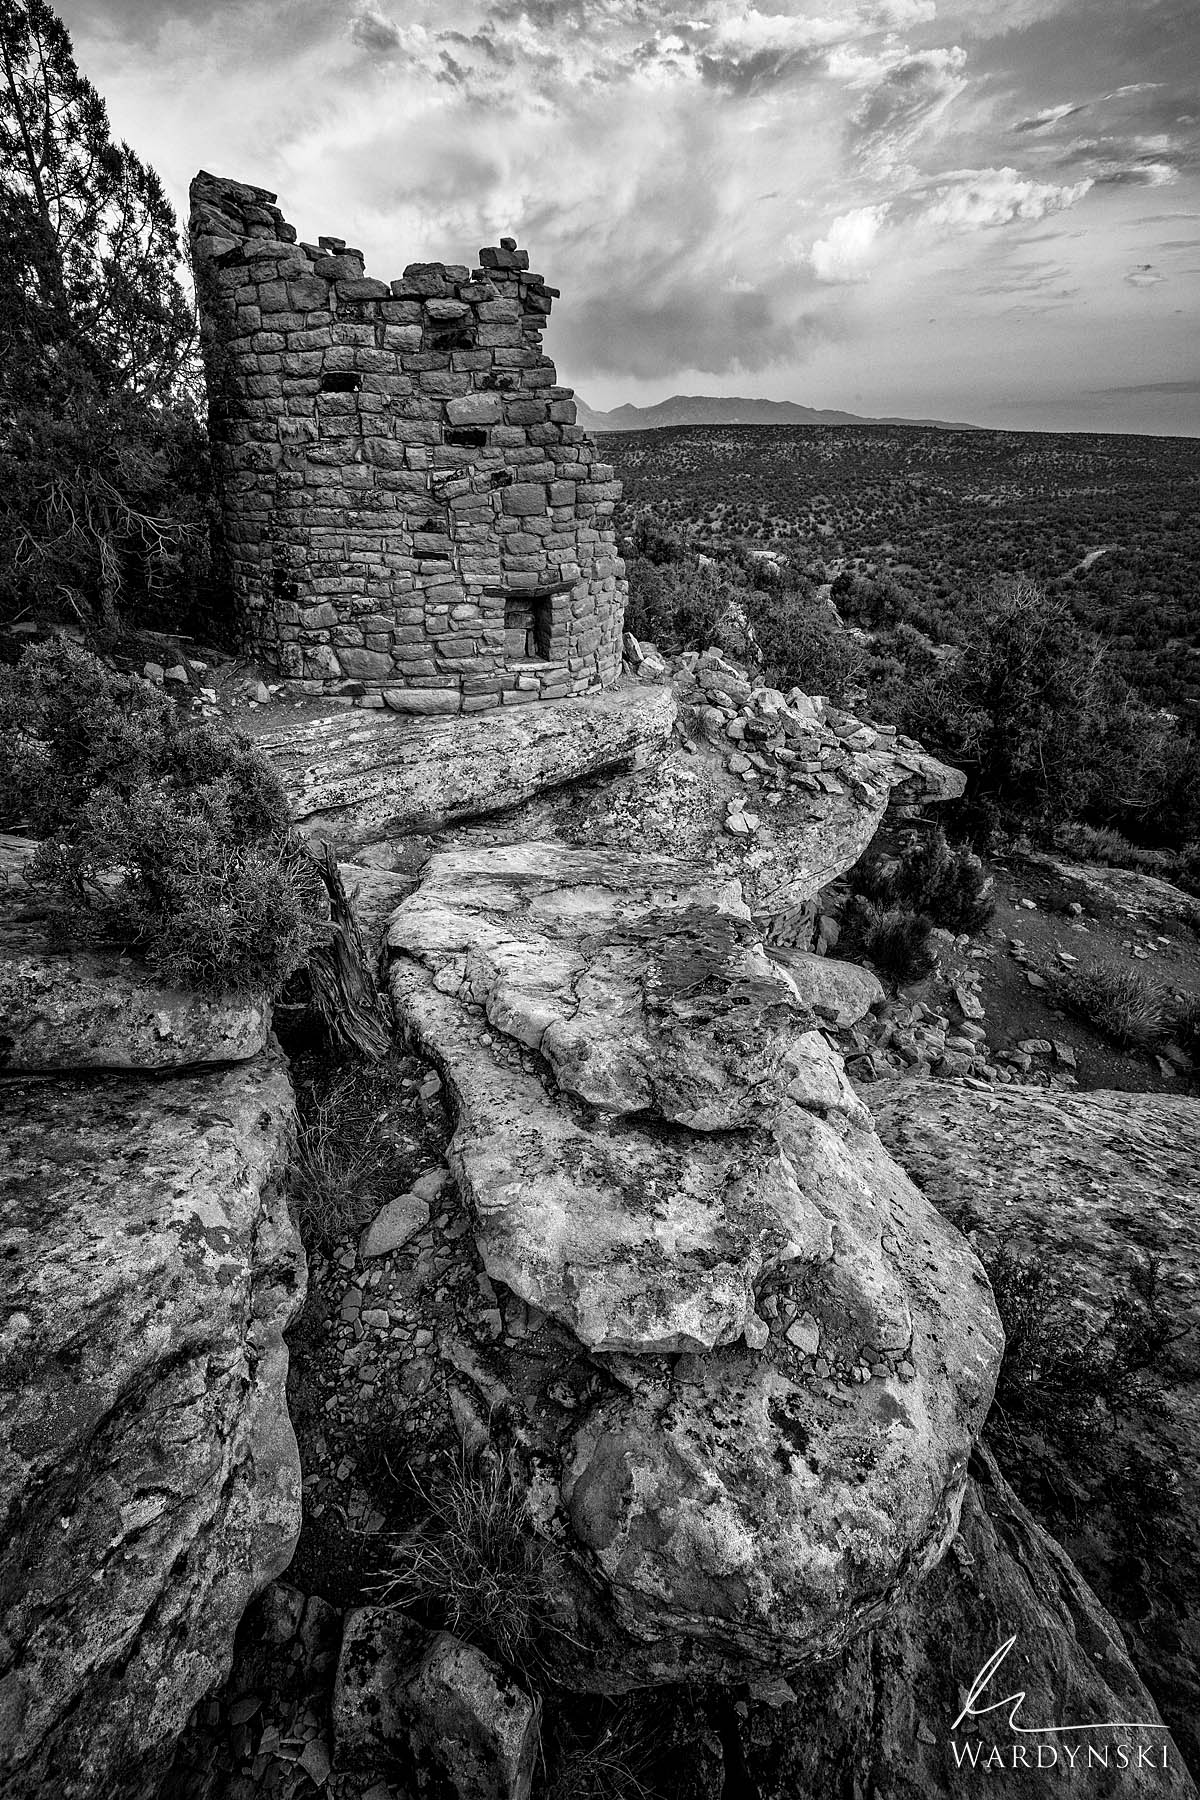 Black and White Fine Art Print | Limited Edition of 100 An ancient Anasazi ruin rests on the edge of a shallow canyon in Western...